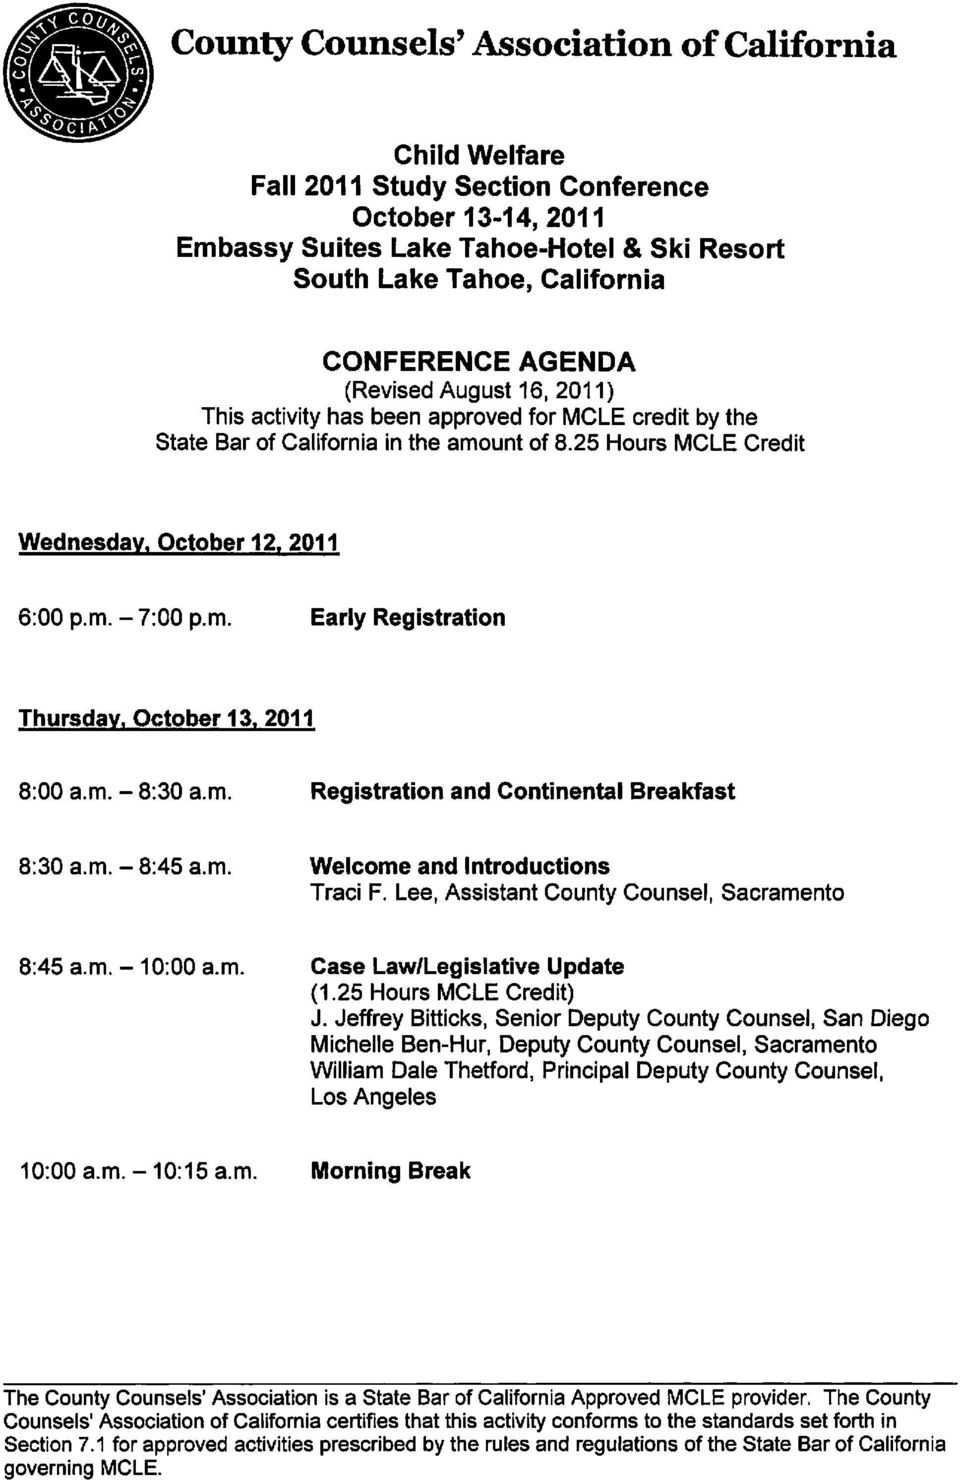 m. Registration and Continental Breakfast 8:30 a.m. - 8:45 a.m. Welcome and Introductions Traci F. Lee, Assistant County Counsel, Sacramento 8:45 a.m. -10:00 a.m. Case Law/Legislative Update J.